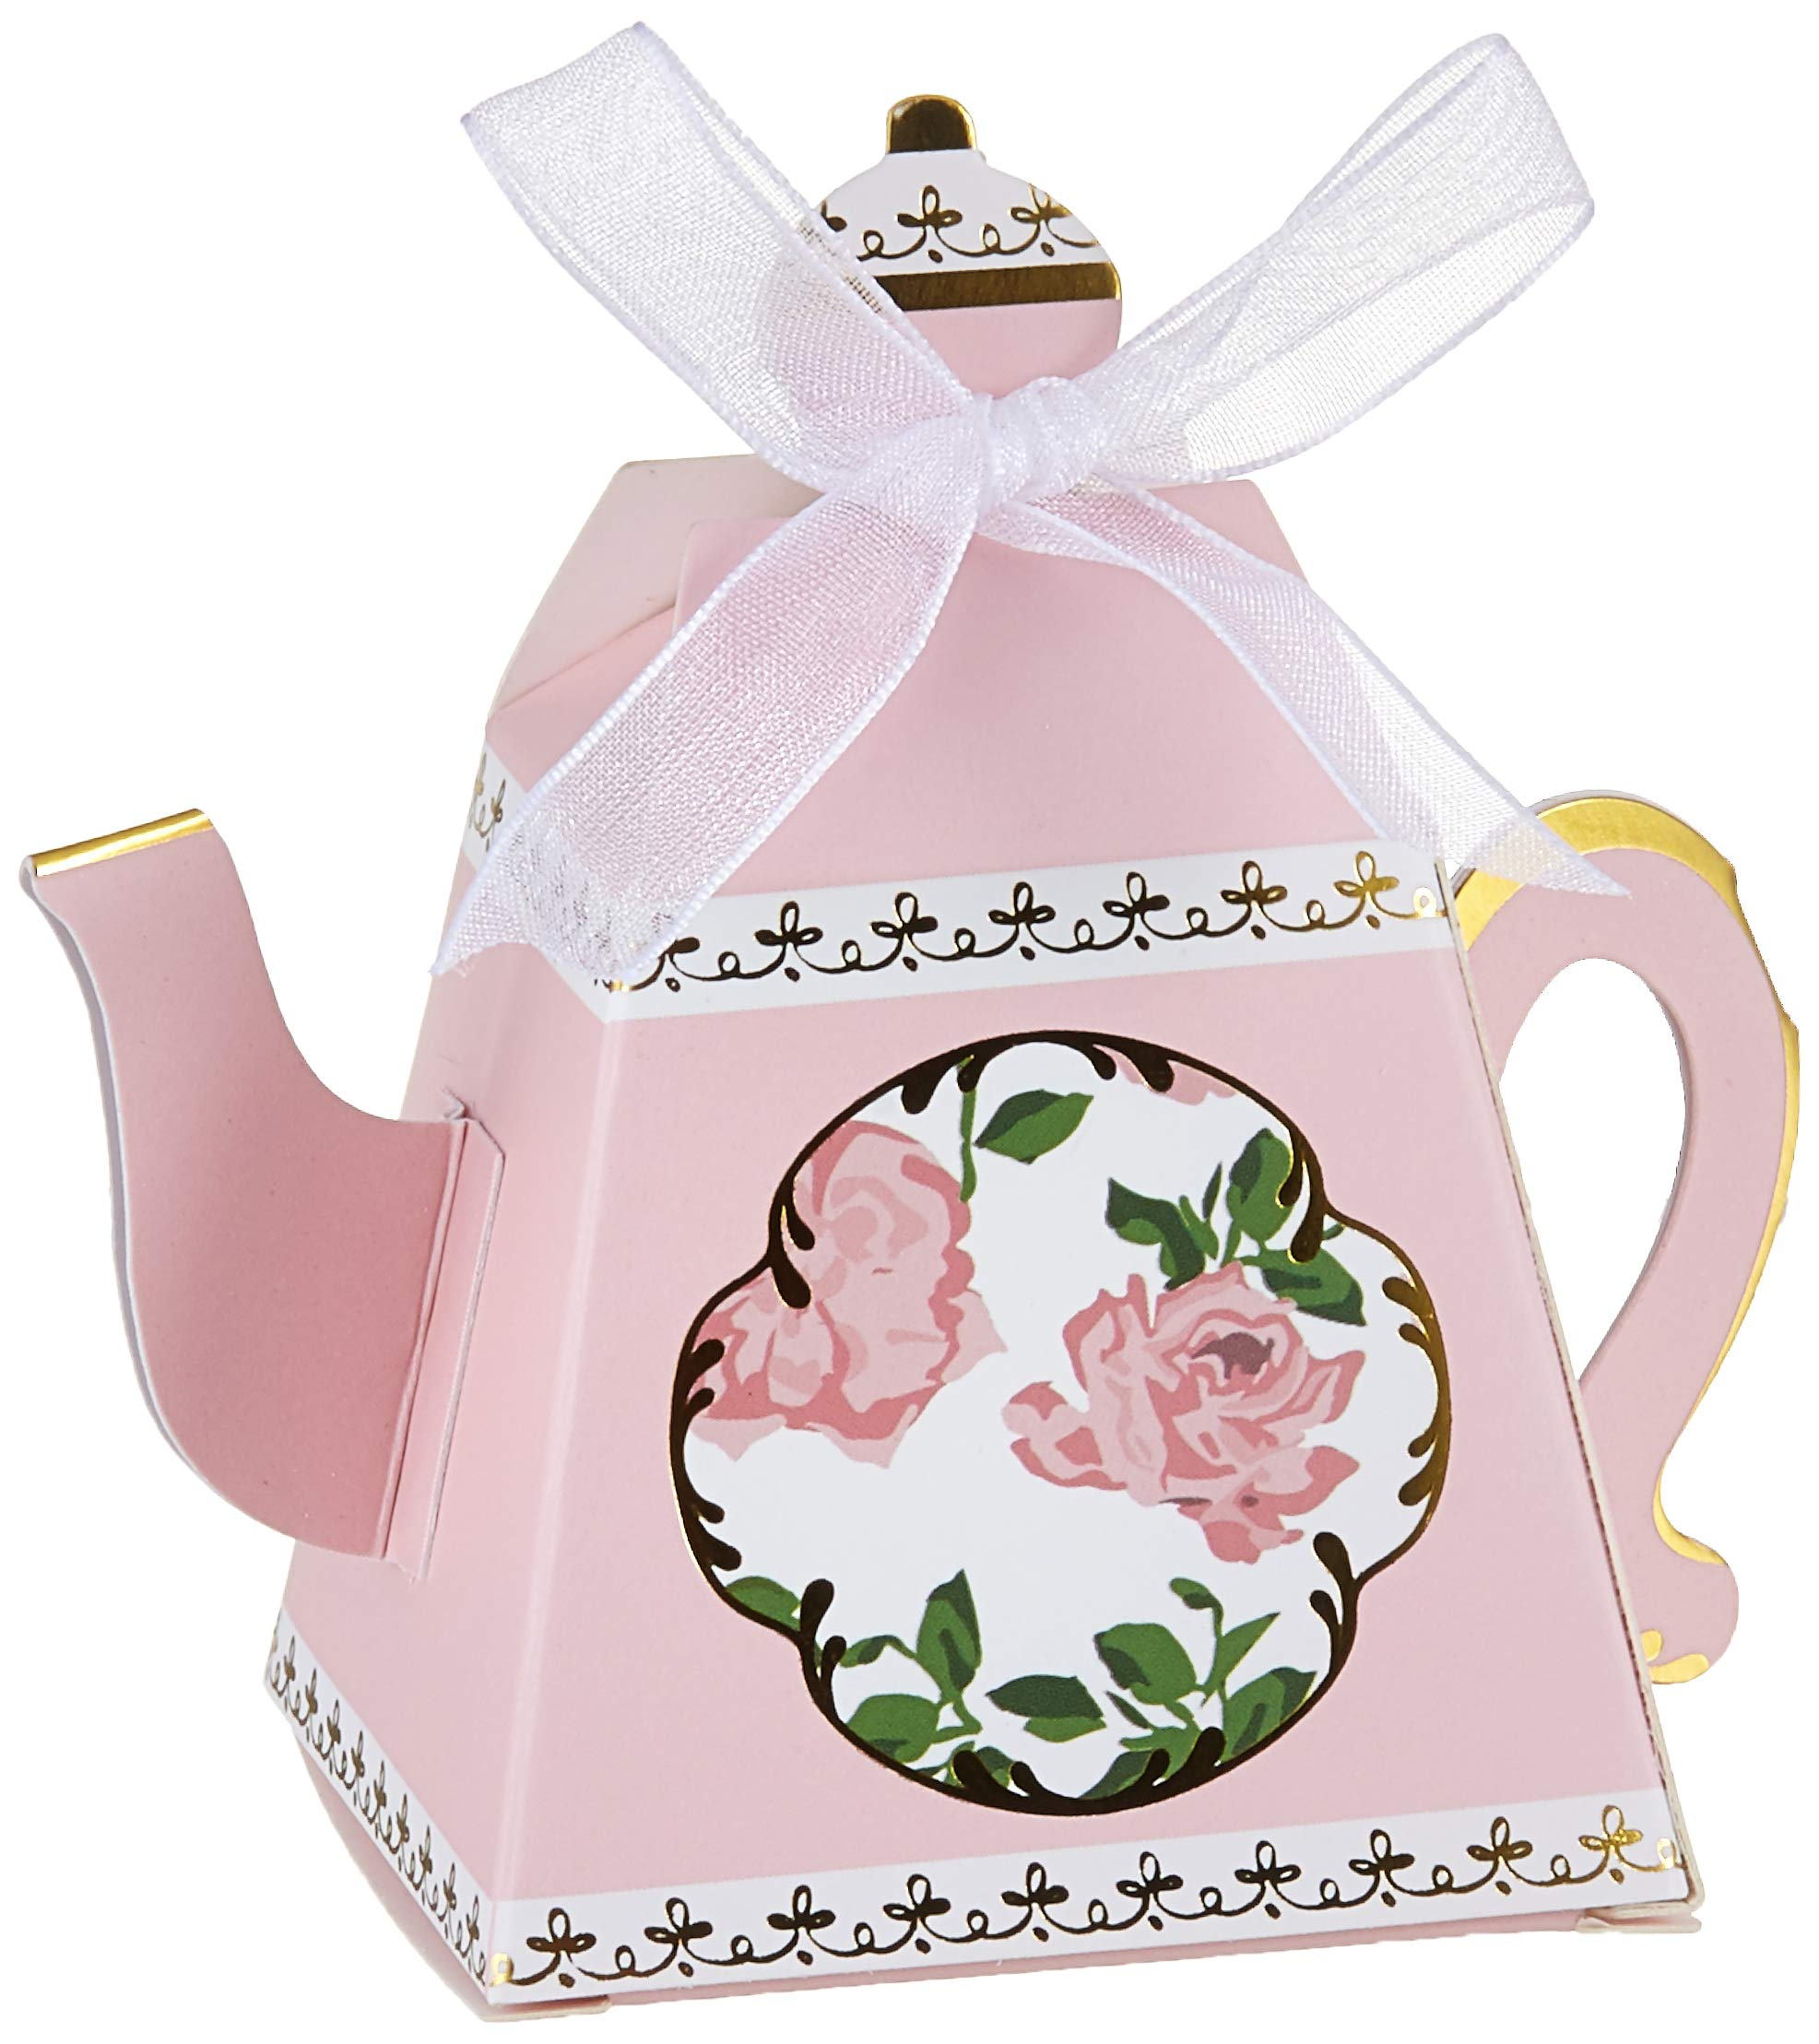 Kate Aspen, Tea Time Whimsy Collection, Teapot Tea Party Favor Box (Set of 24), One Size, Pink by Kate Aspen